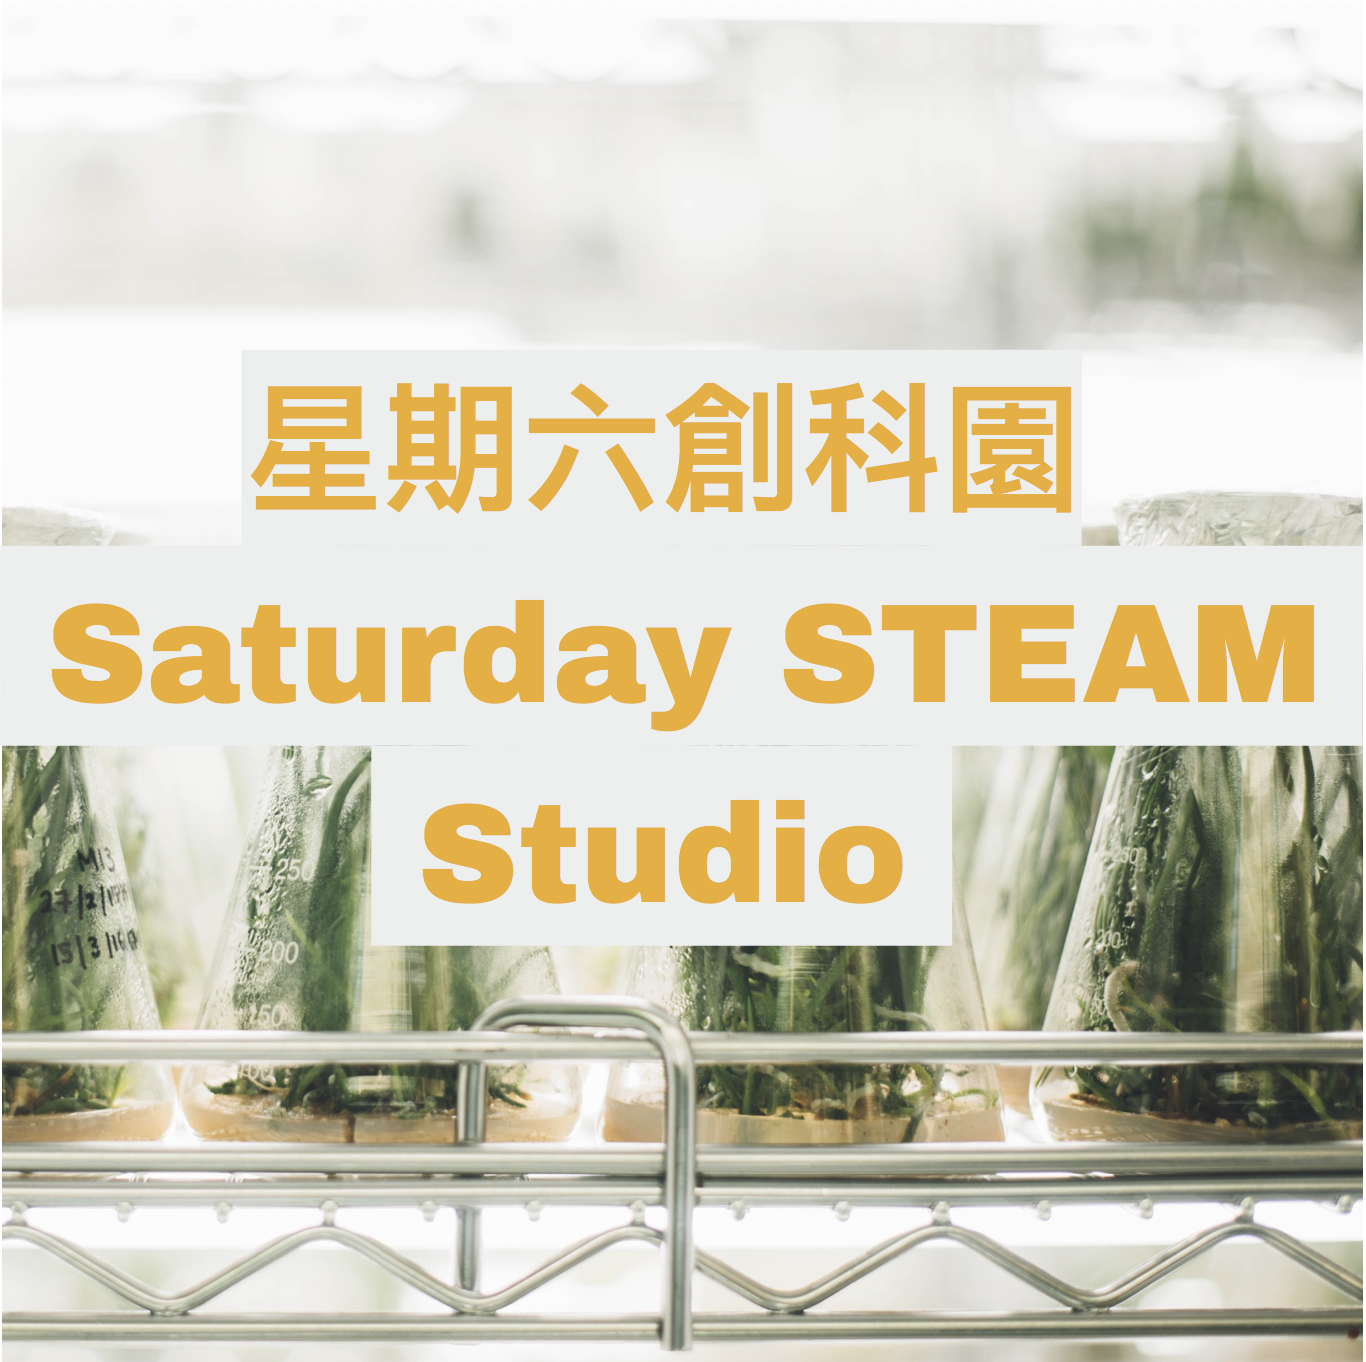 Every Saturday | 2pm-3pm  Starting on 16 March  From farms to films, Saturday STEAM Studio is an  intergenerational workshop  that provides ample opportunity for you  to make things with your hands.